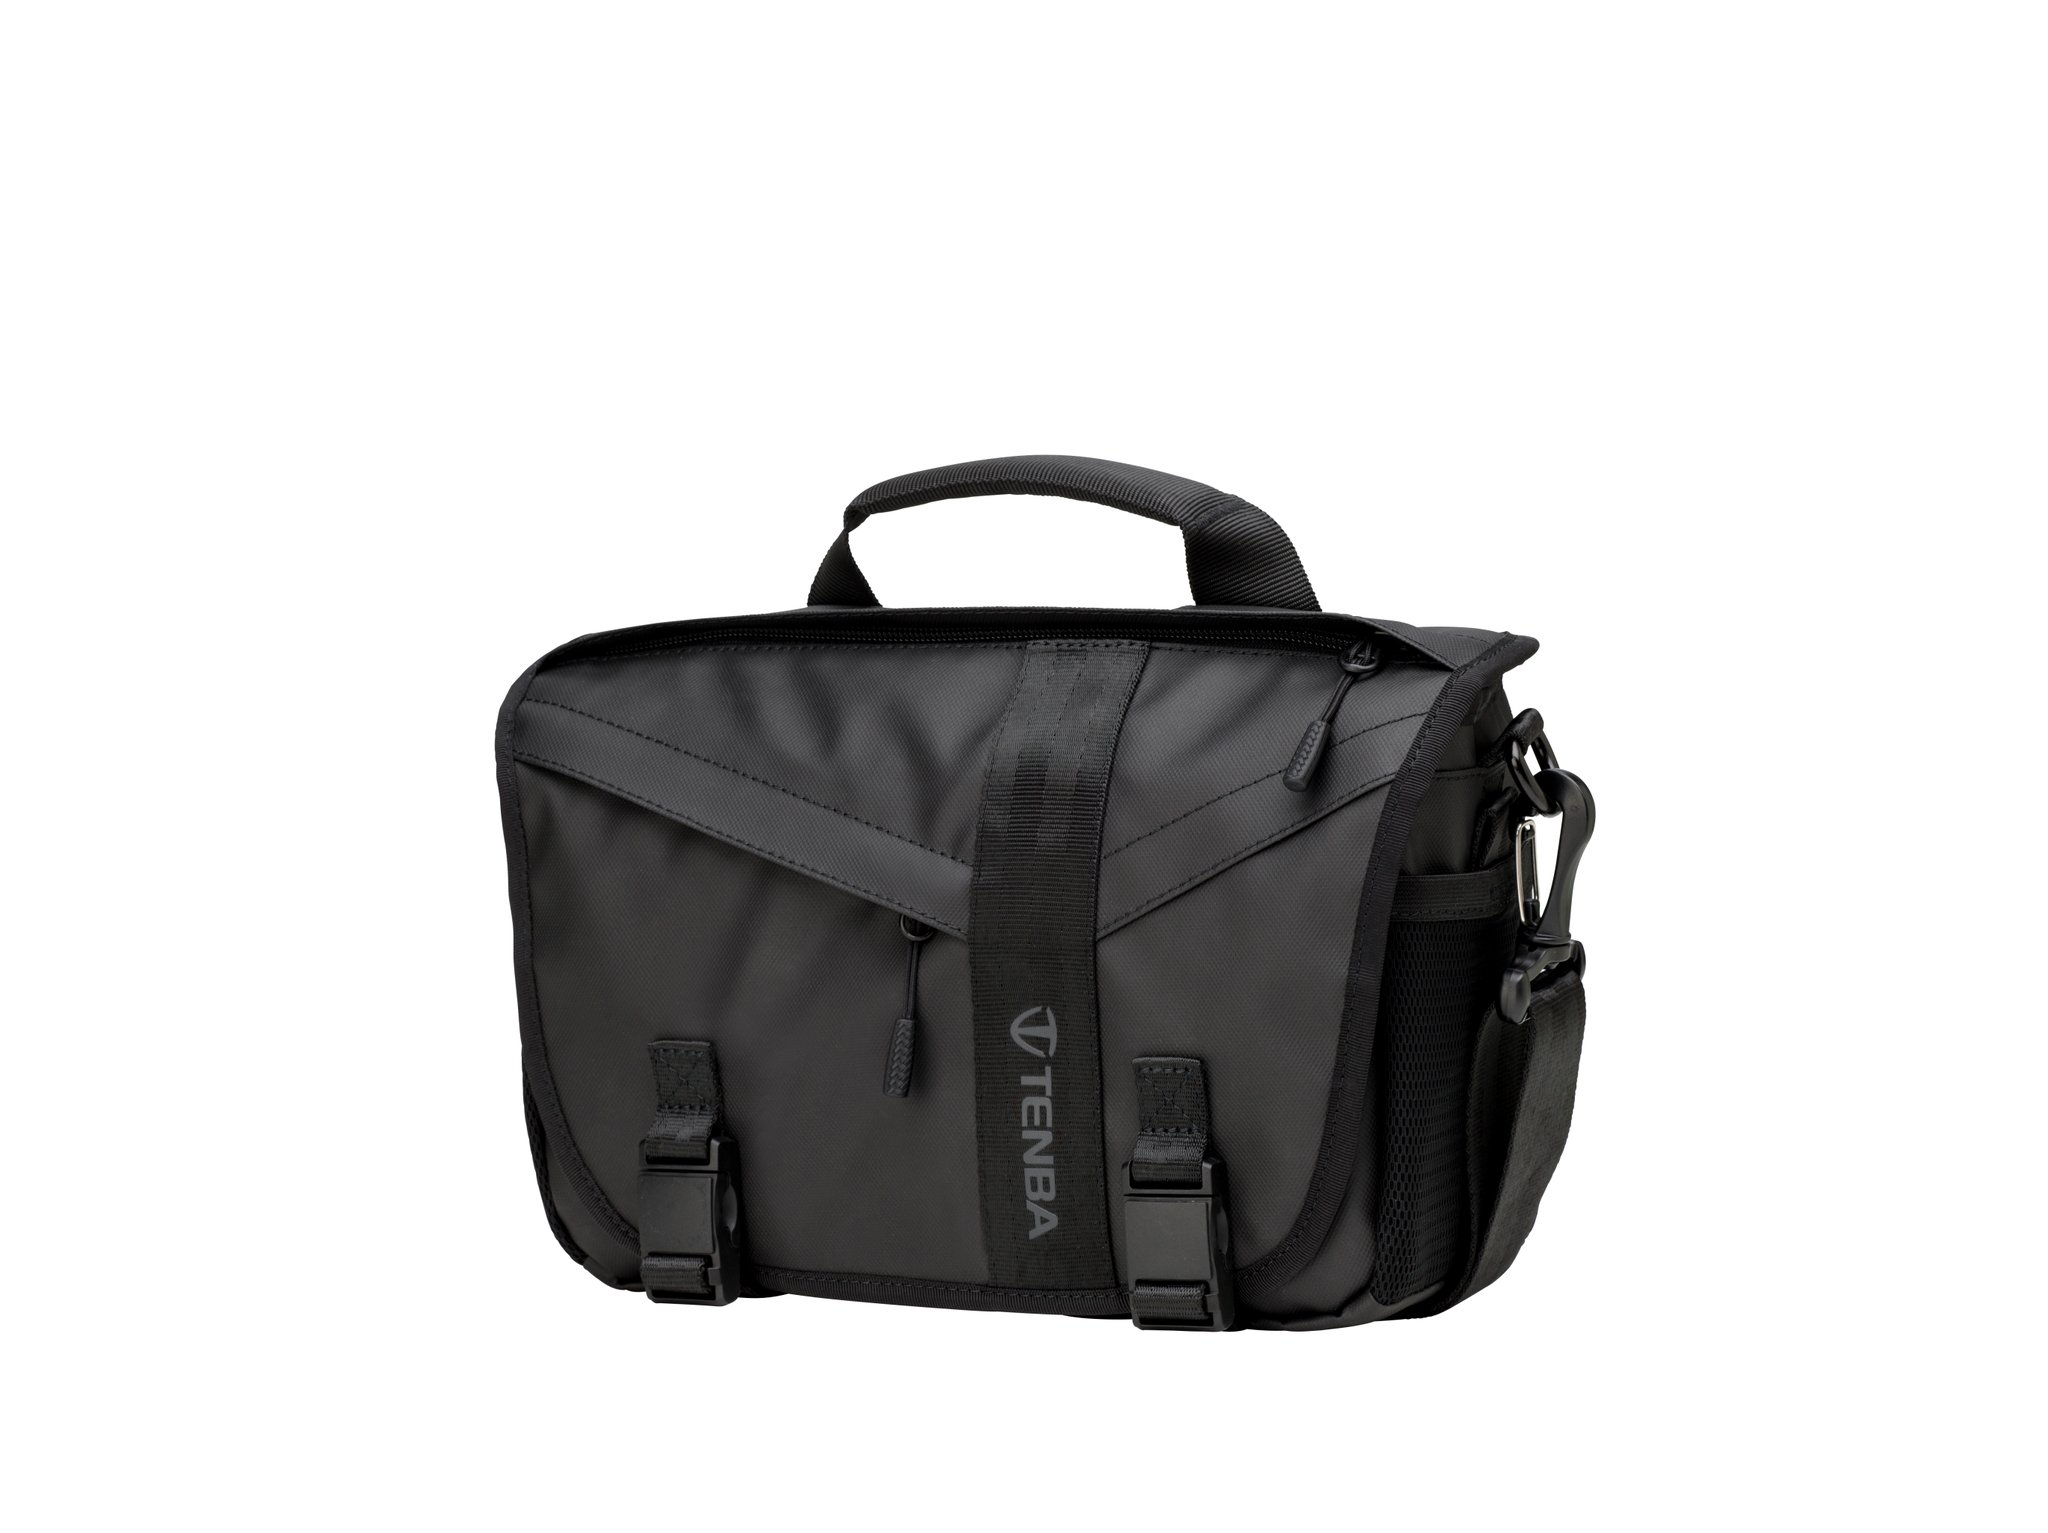 Tenba DNA 8 Messenger Bag - Special Edition (638-425)